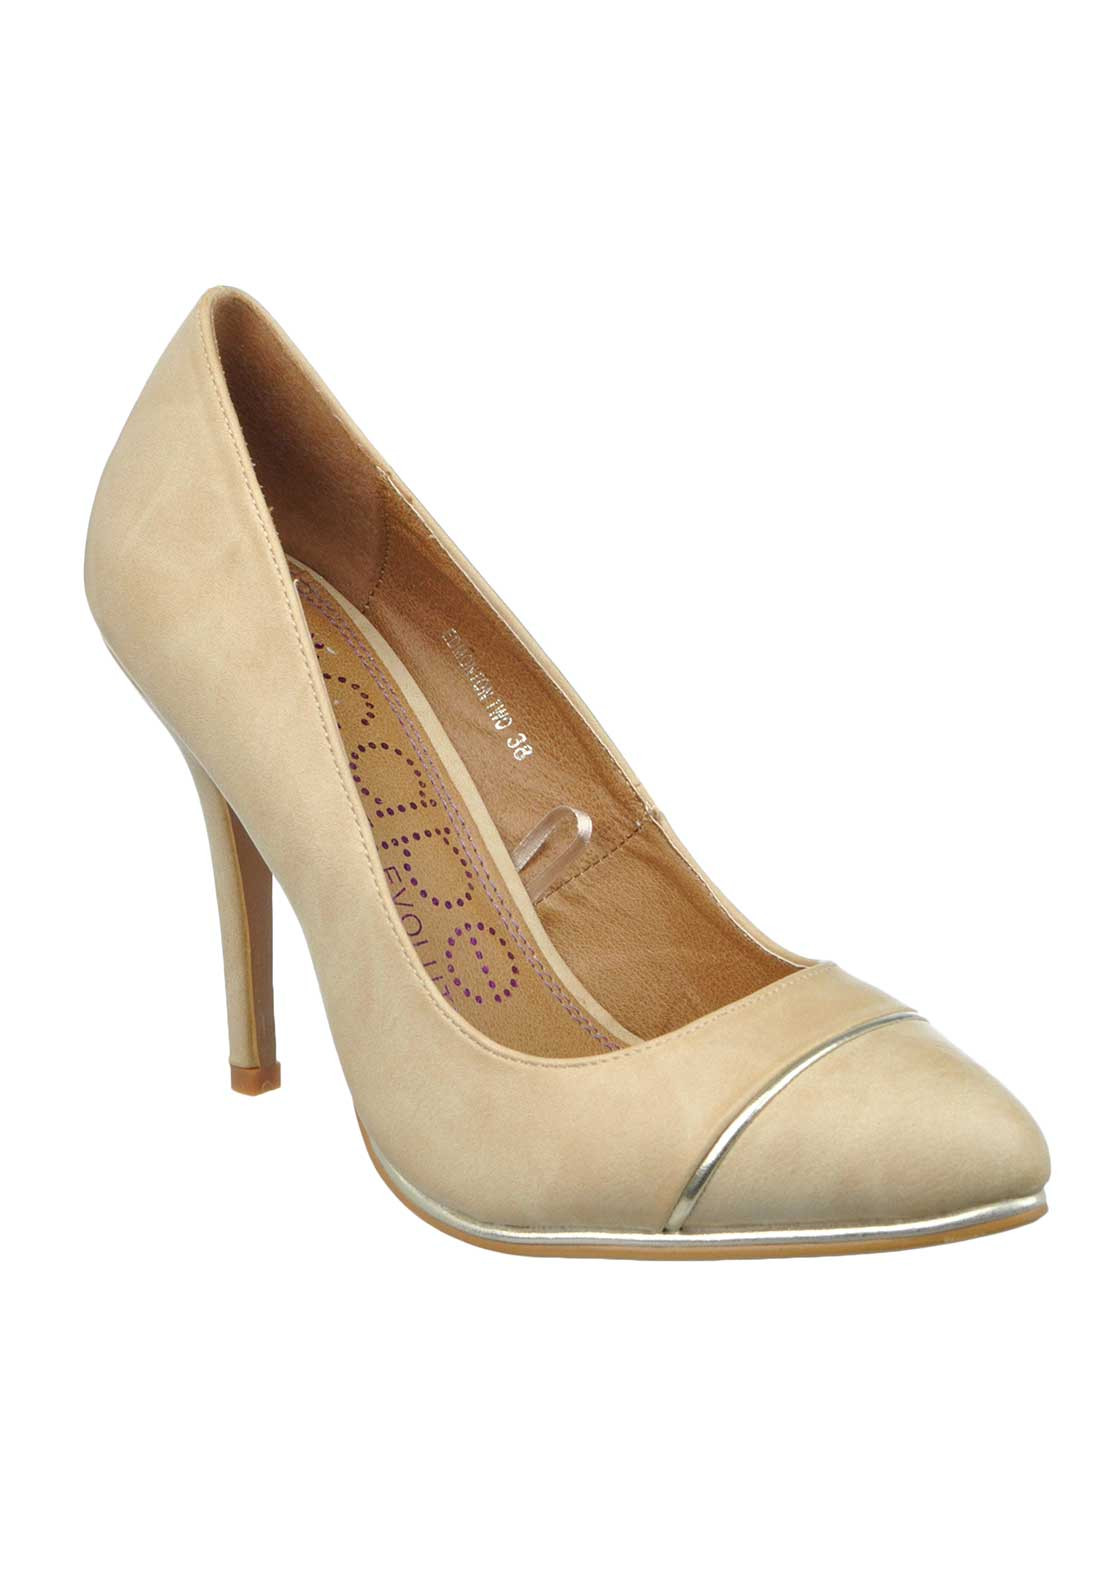 Escape Edmonton Faux Leather Pointed Toe Heeled Shoes, Beige